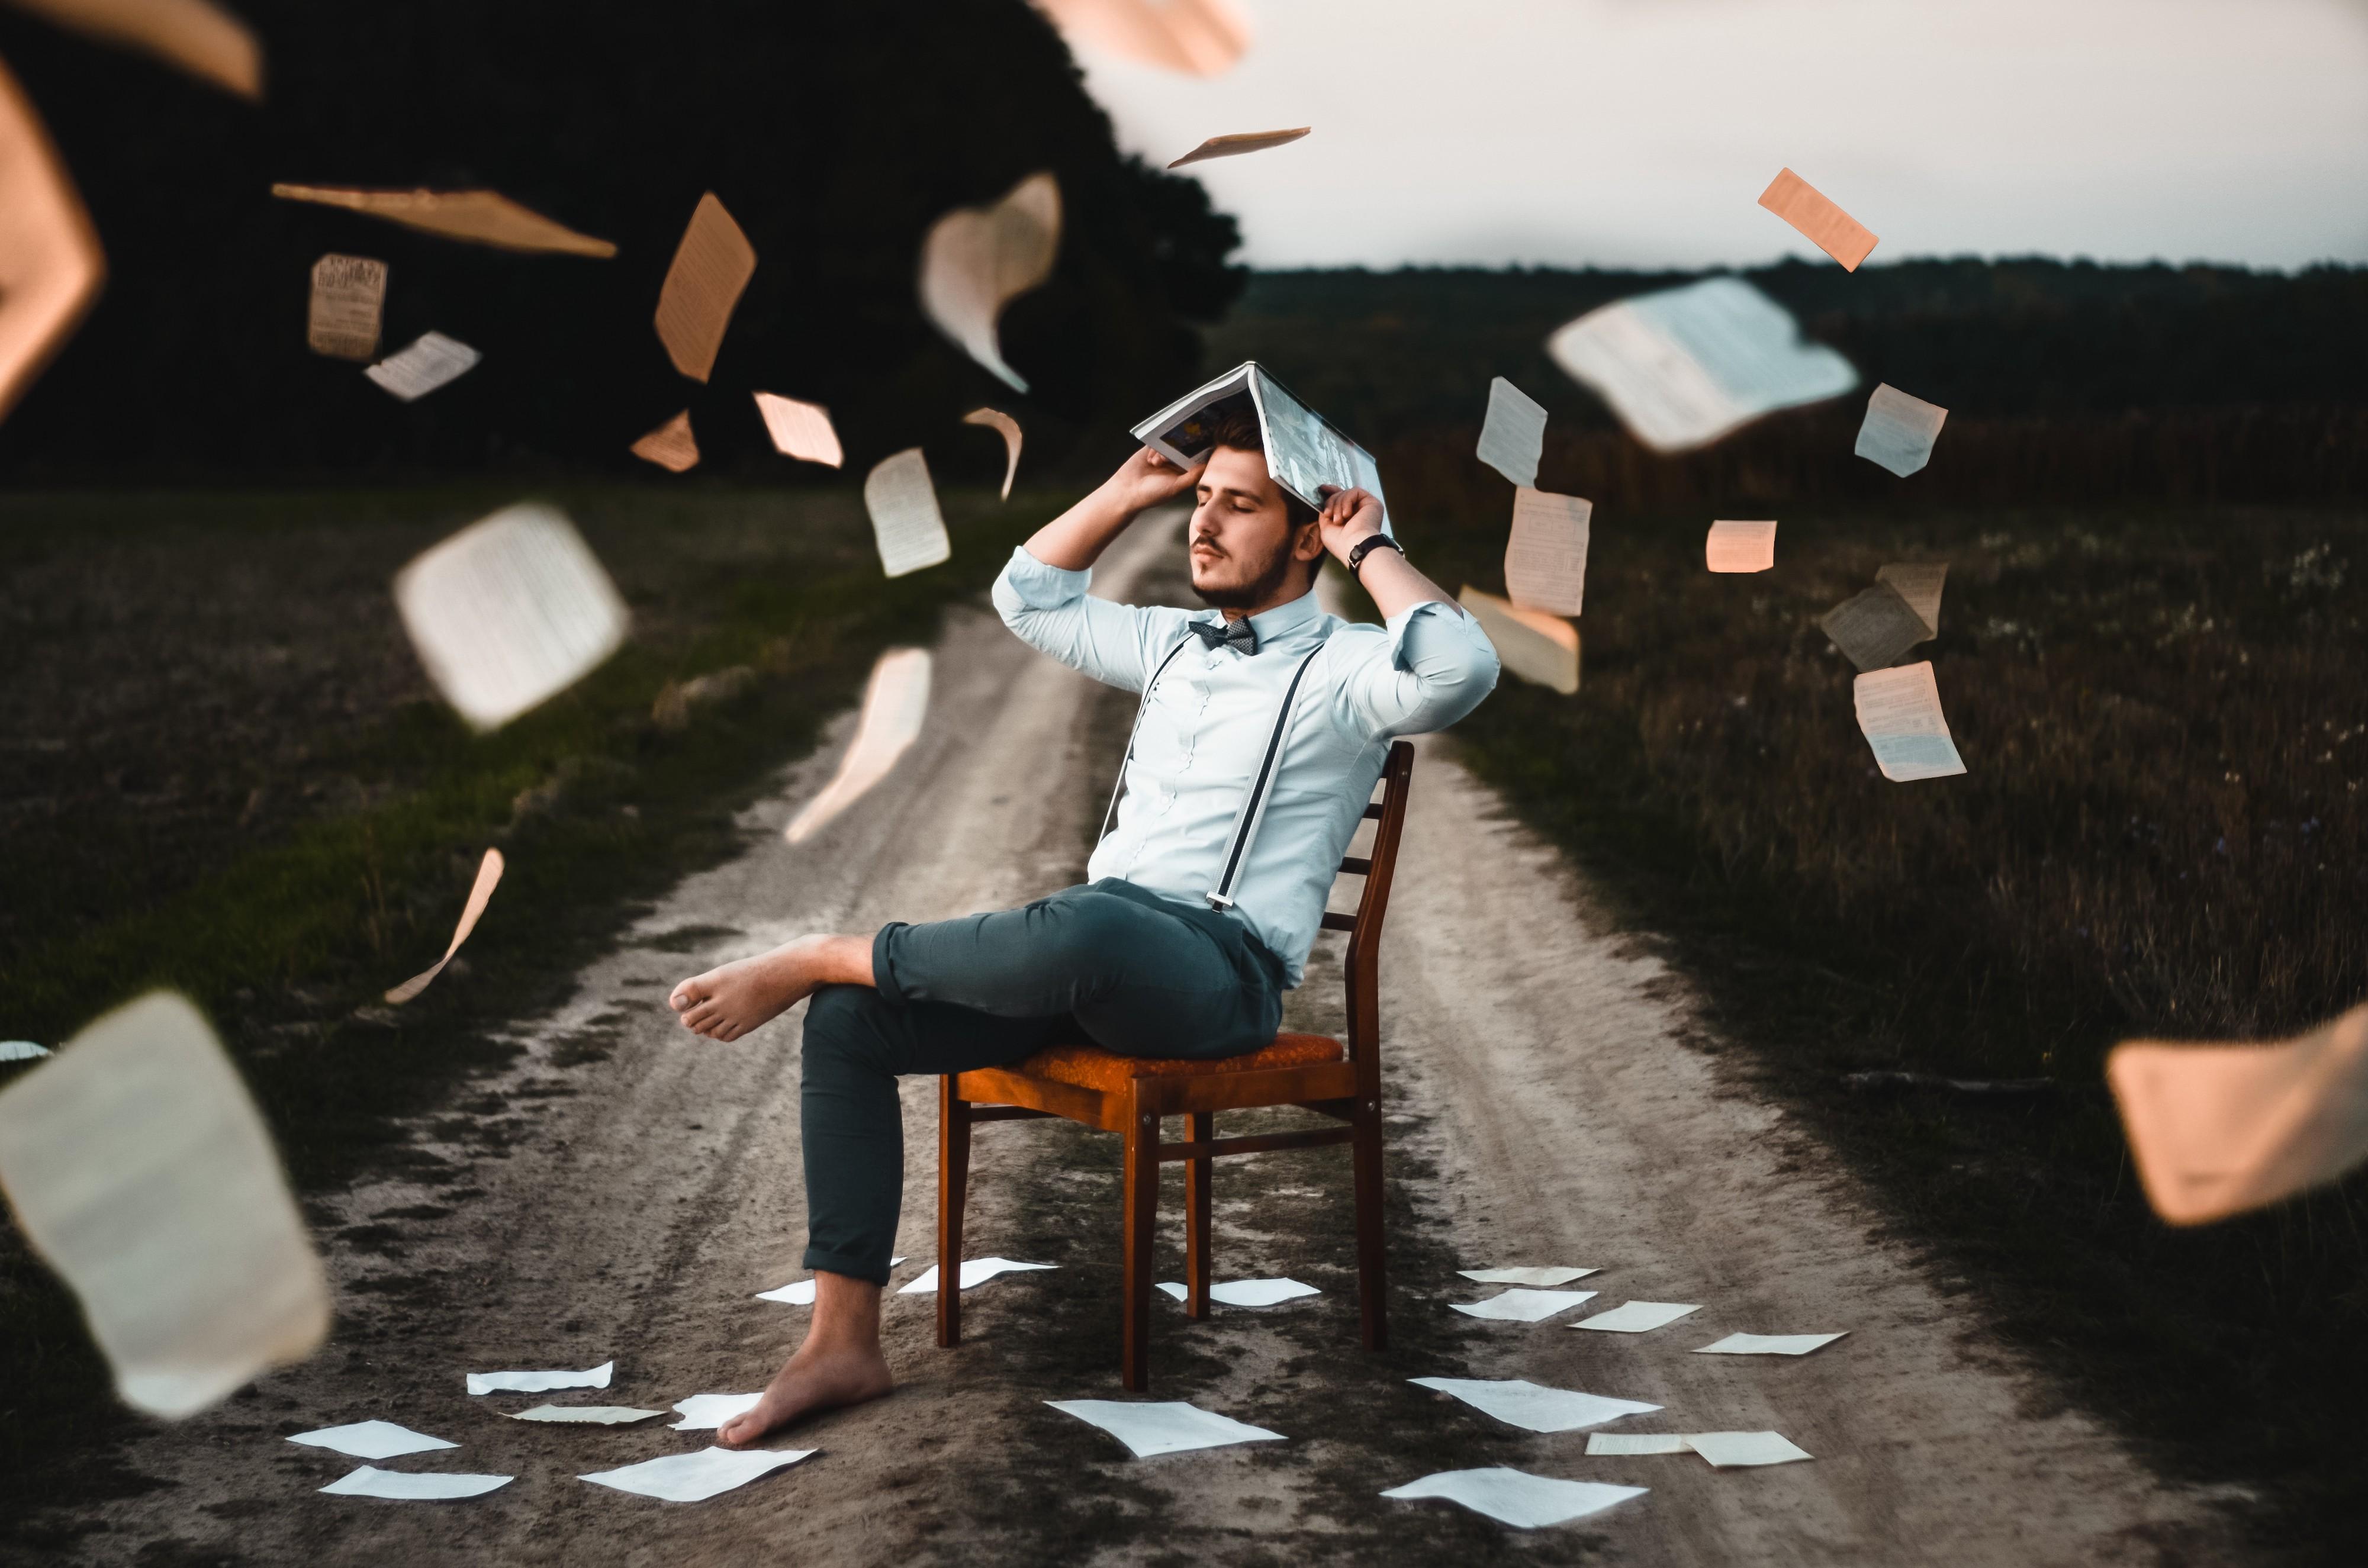 A man sitting alone surrounded by paper